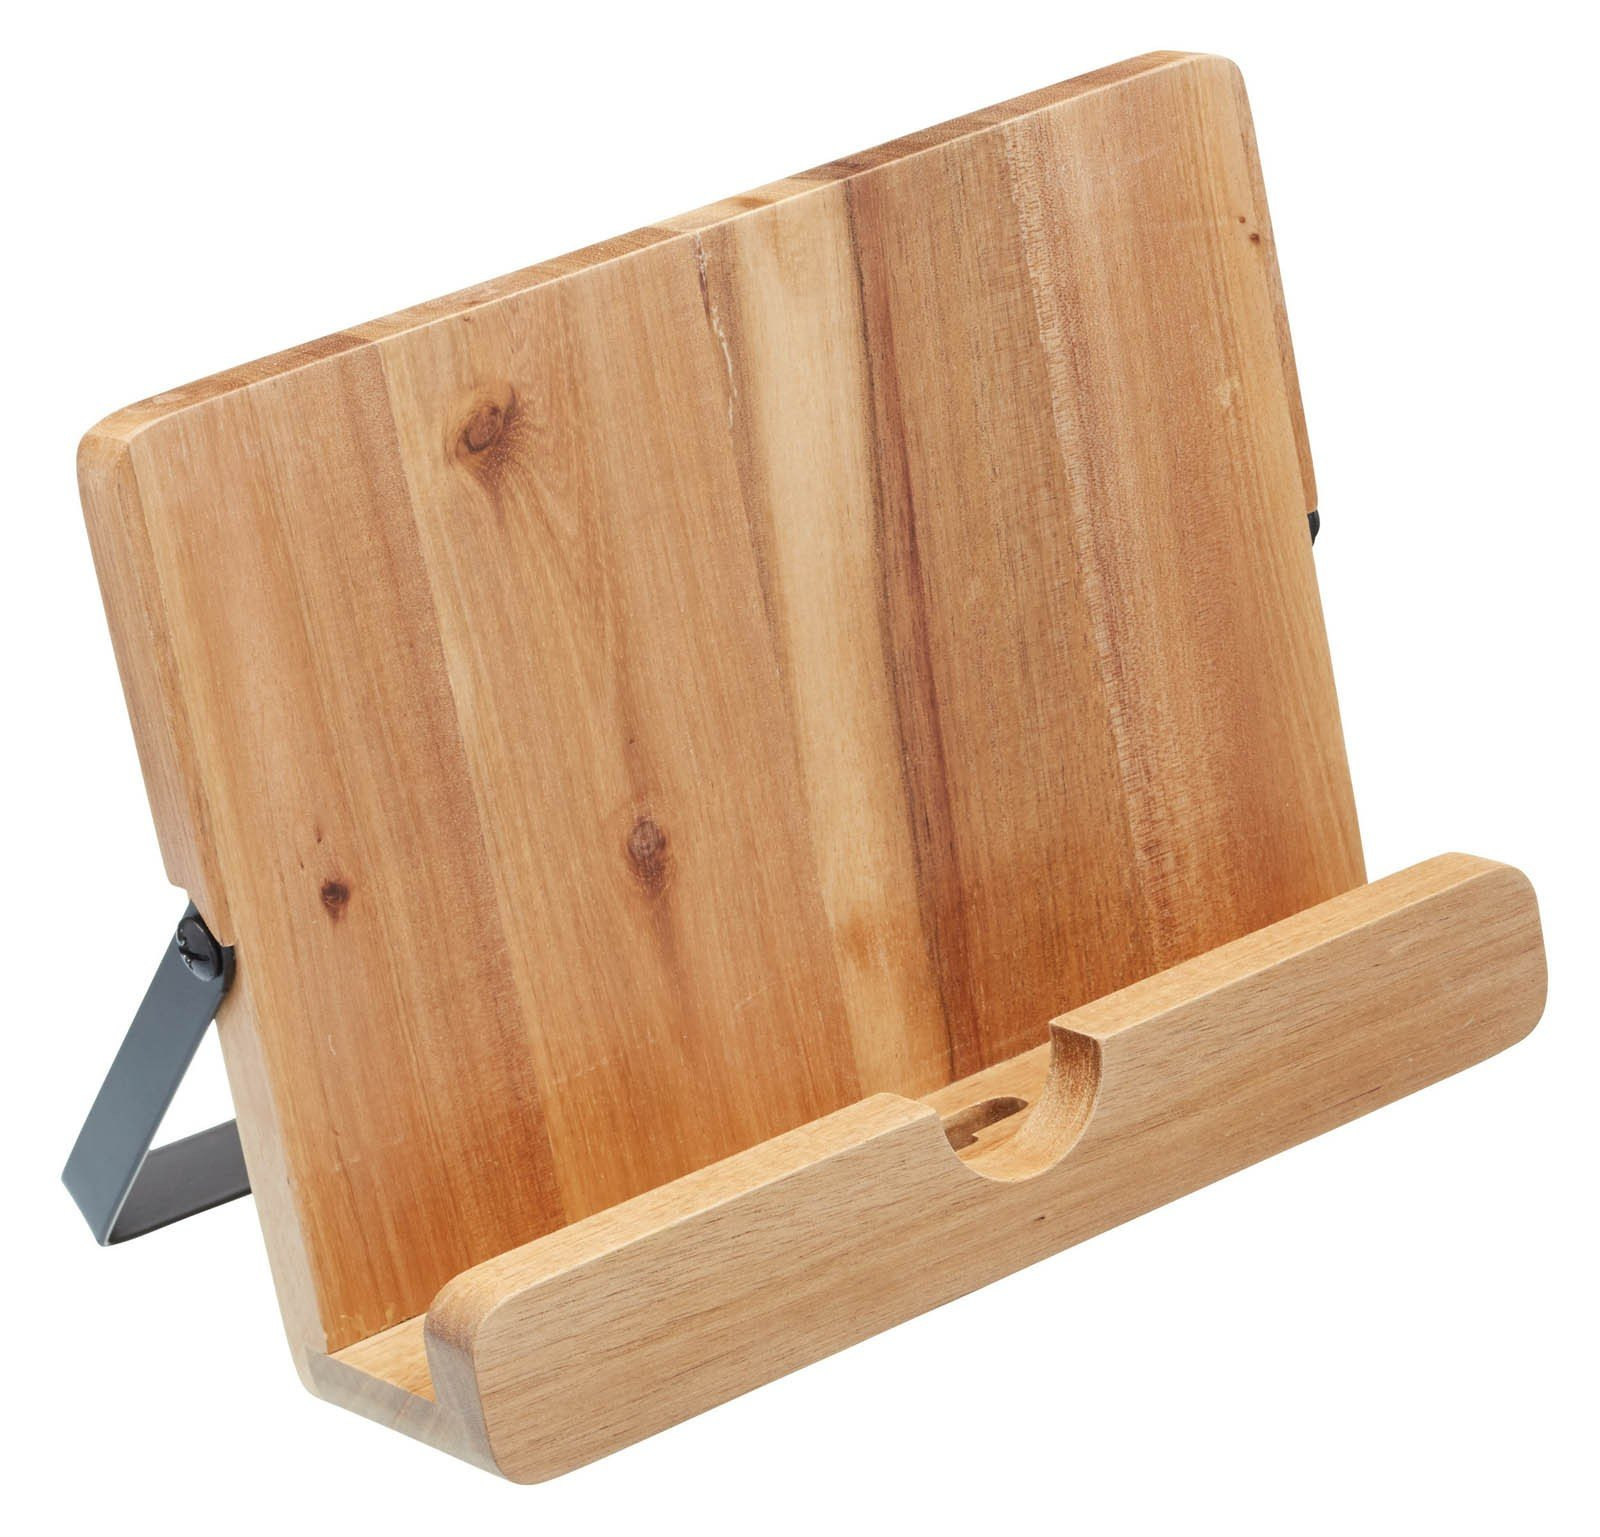 KitchenCraft Natural Elements Acacia Wood Cookbook / Tablet Stand by KitchenCraft